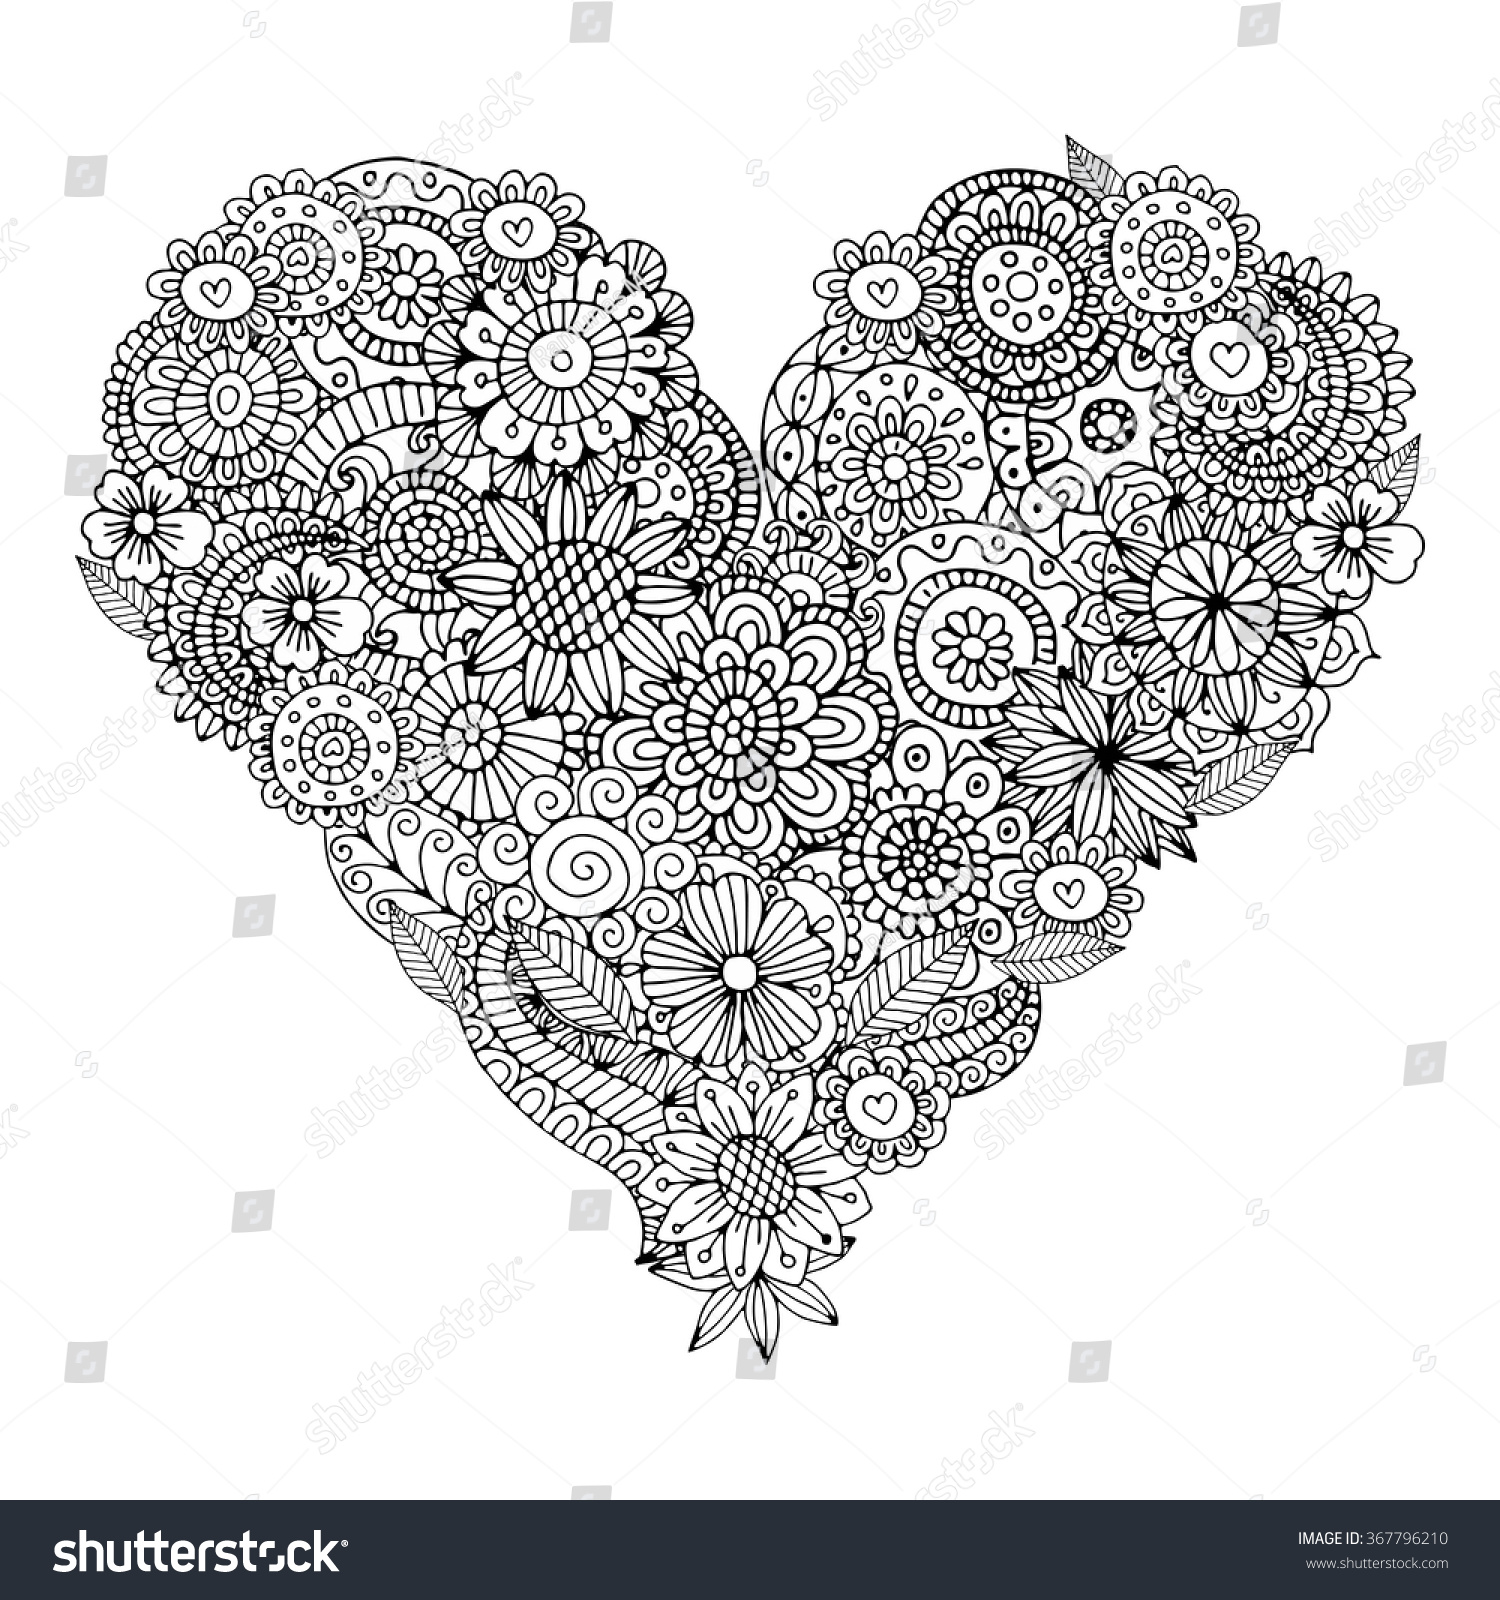 Heart Shaped Flowers Zentangle Pattern Coloring Stock Vector ...